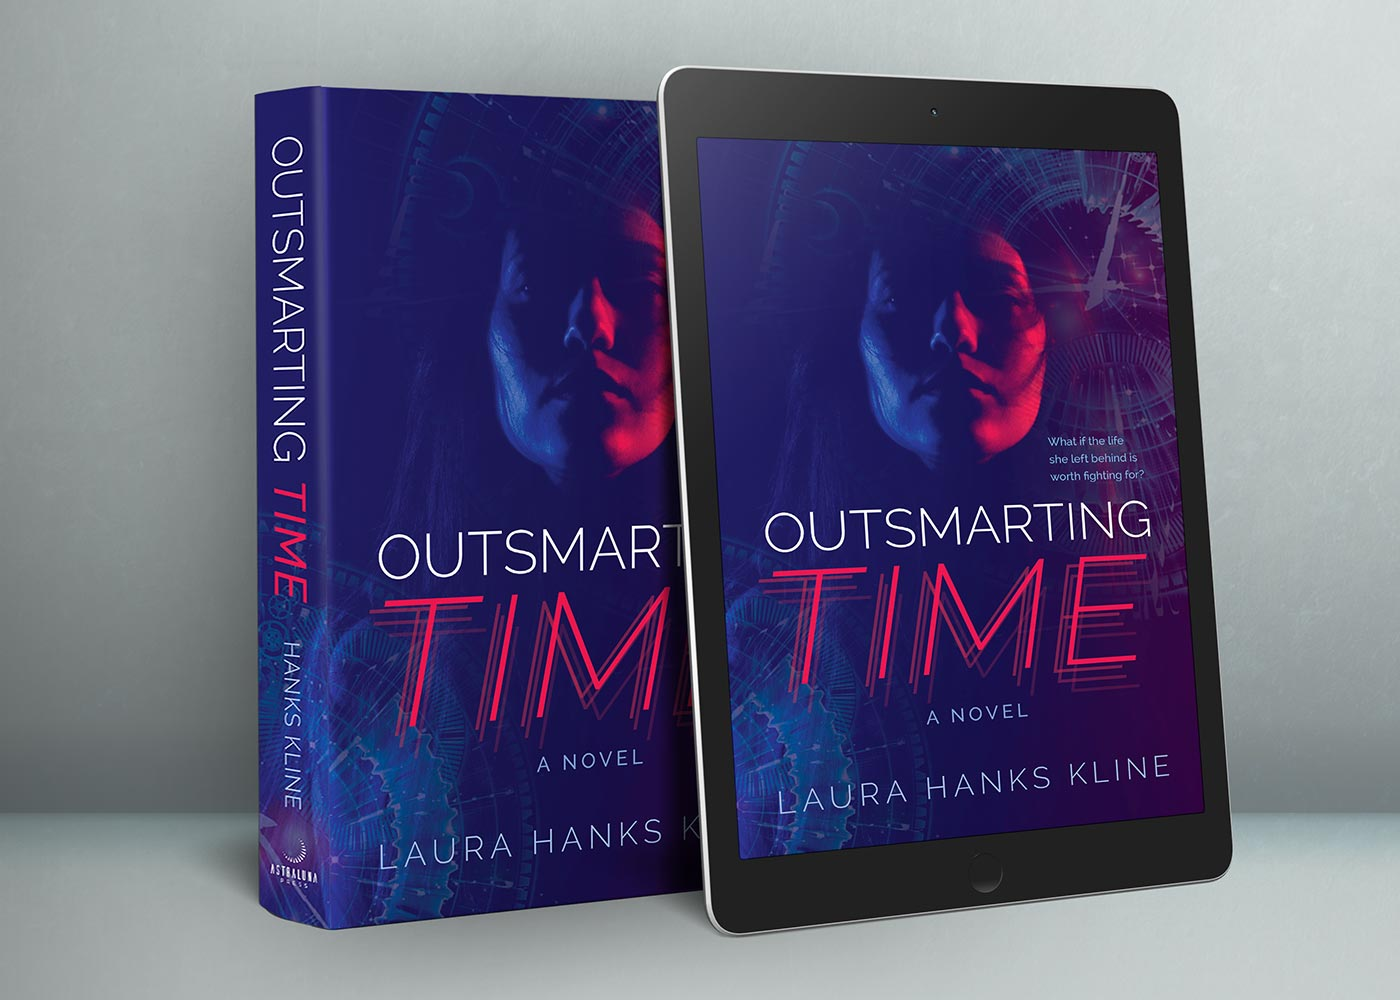 Outsmarting Time by Laura Hanks Kline